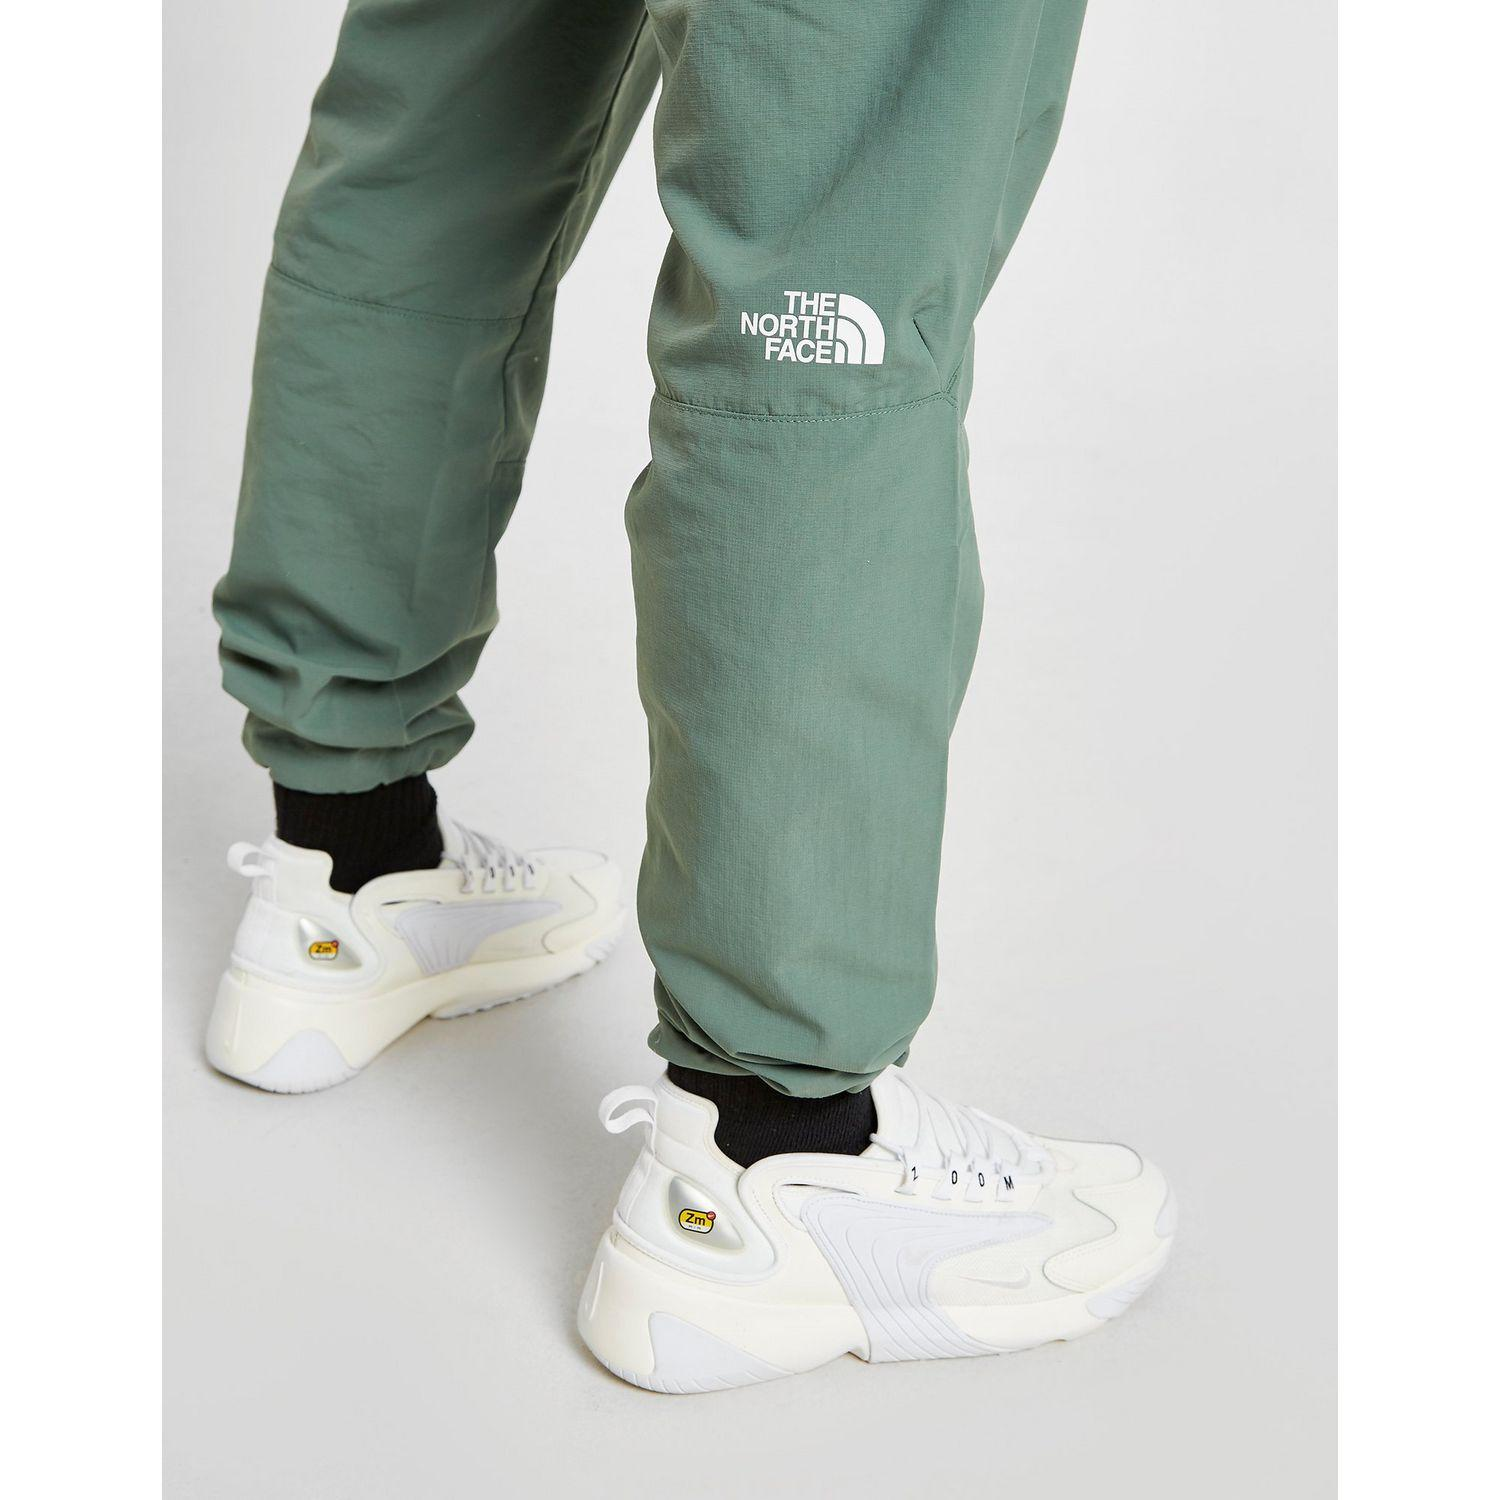 57edc1611f The North Face Zip Pocket Track Pants in Green for Men - Lyst